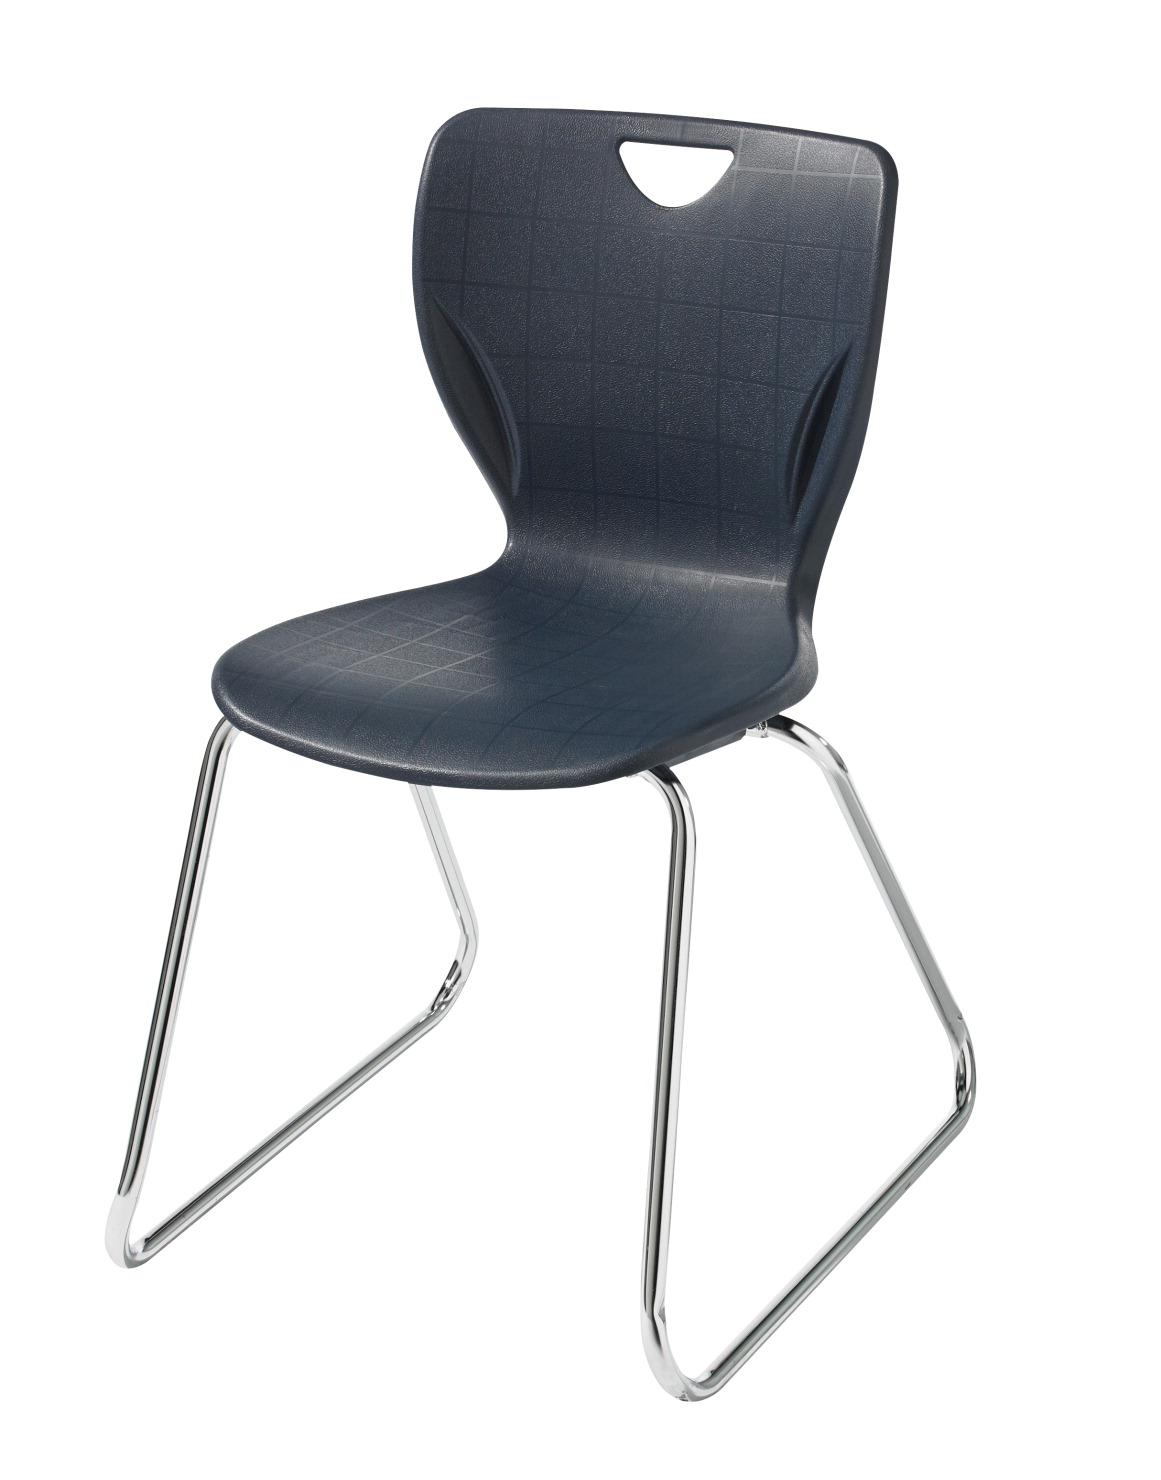 Classroom Select Contemporary Sled Base Chair, without Glides, 18 in. Seat Height, Chrome Frame